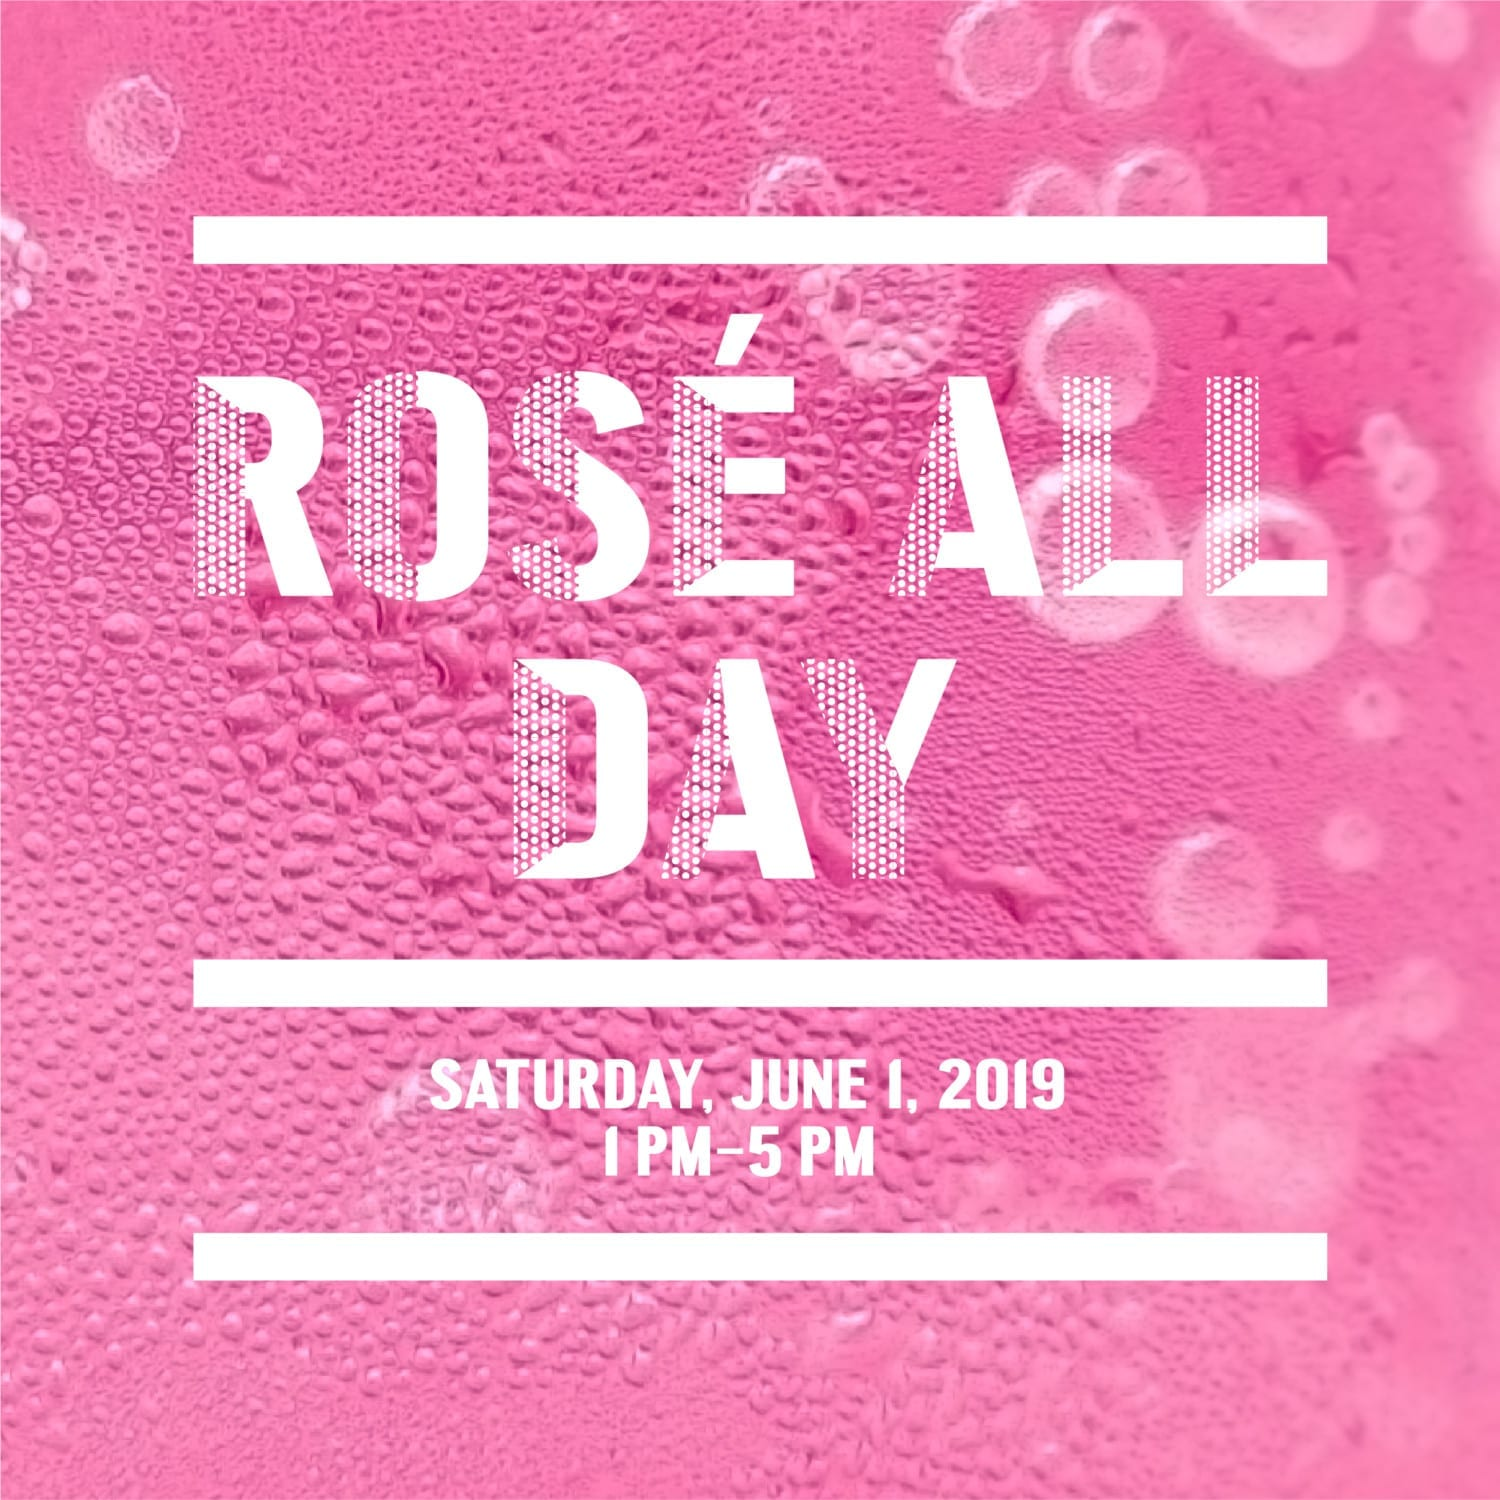 Rosé All Day 2019 event in Washington DC